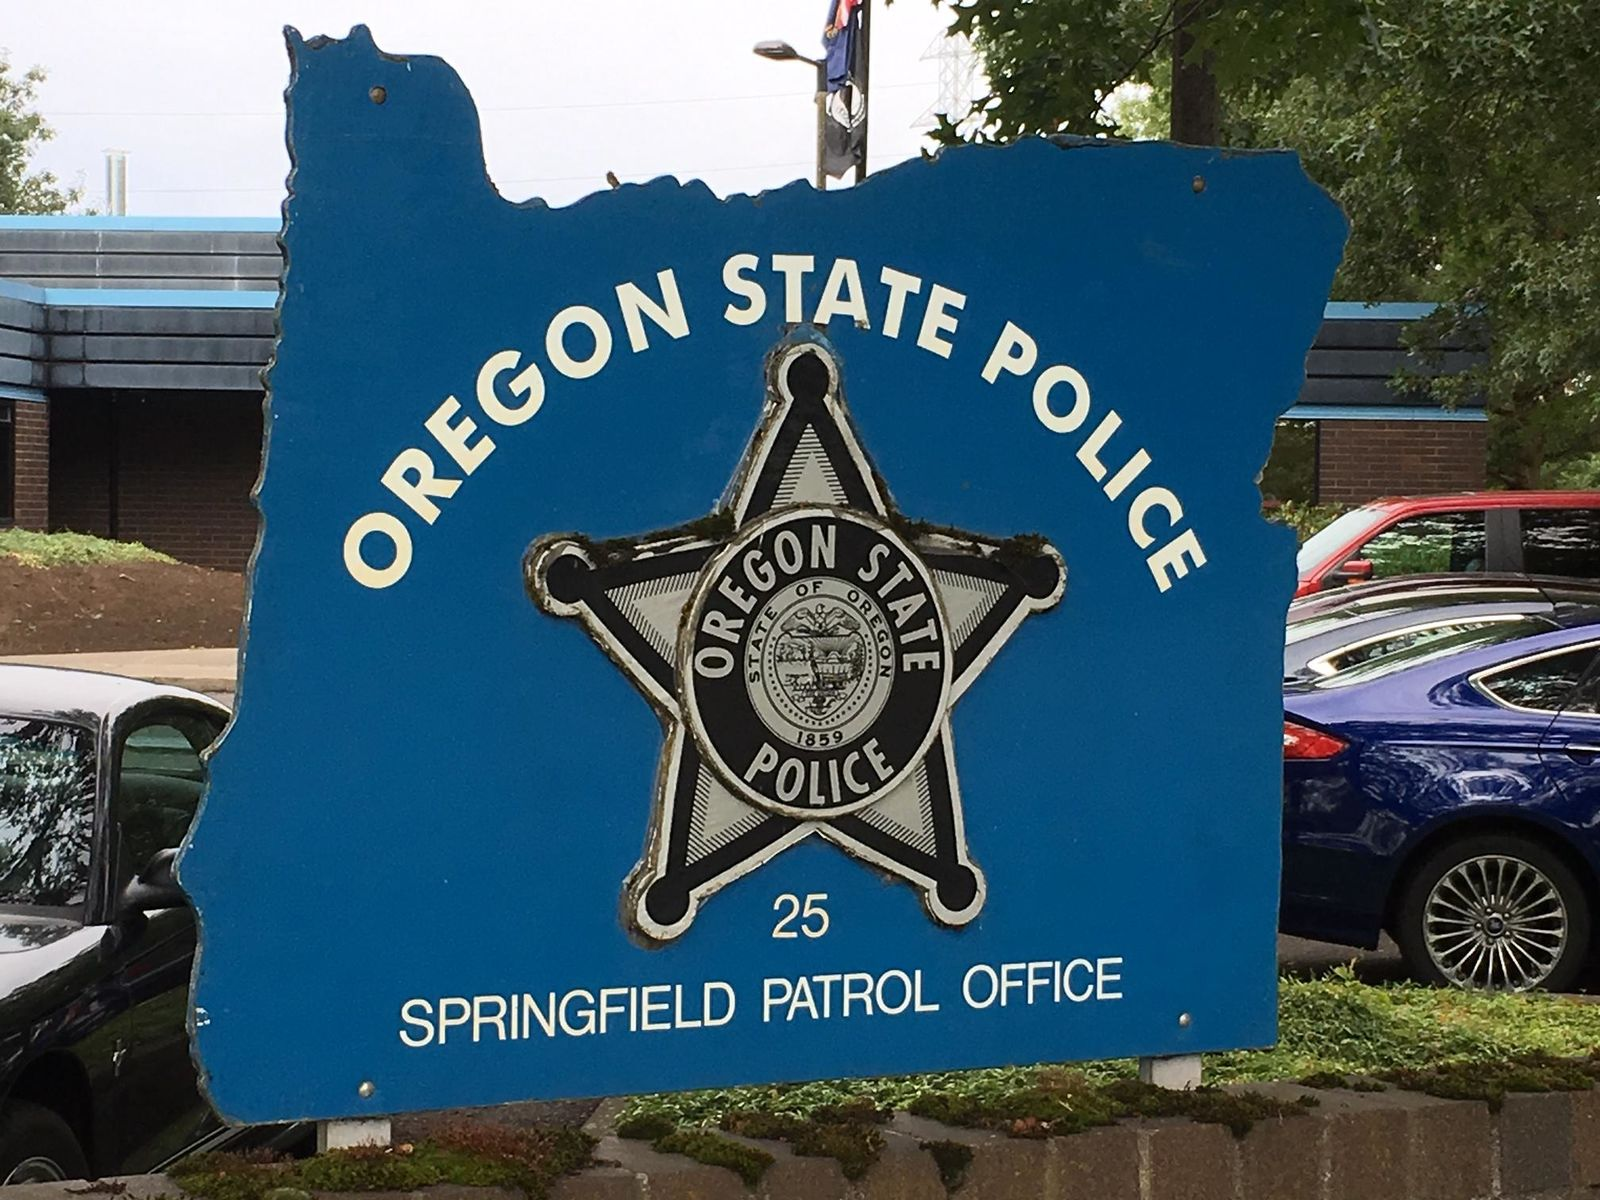 <p>Oregon State Police had hoped to return the force to 15 troopers on the road per 100,000 by the year 2030 with the help of the 2019 Oregon Legislature. Right now, the state has 8 troopers per 100,000 residents. That's the second lowest ratio of state troopers to residents in the United States. (SBG)</p>